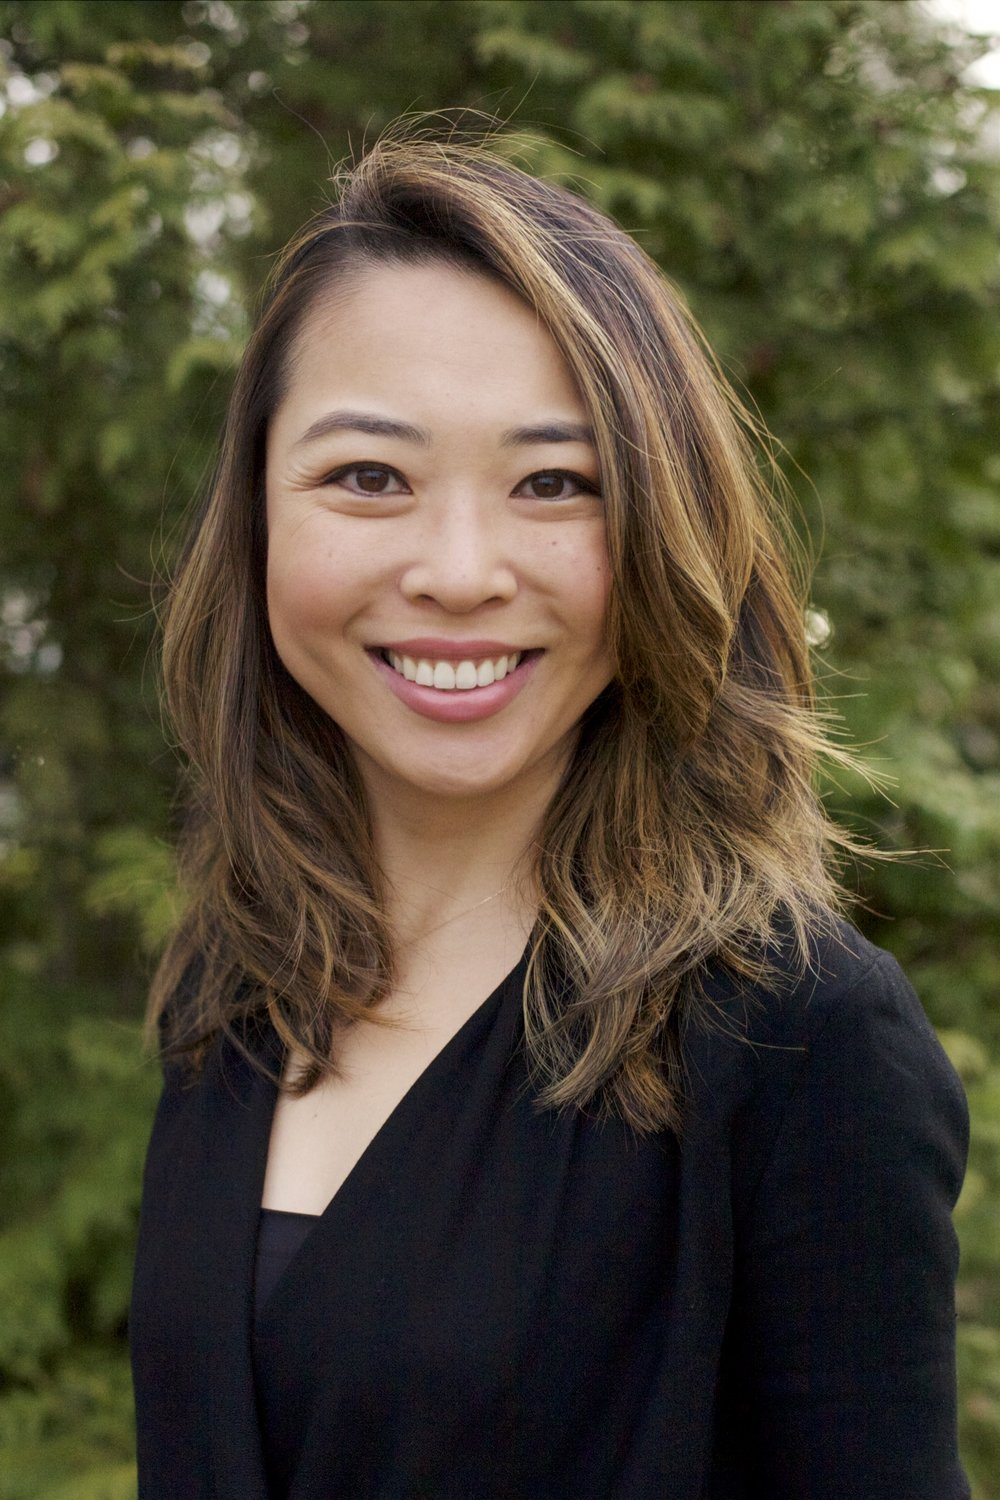 Yurika  Gillum, MSW, LICSW, therapist    ∙  Adults  ∙  Couples therapy  ∙  Relationship issues  ∙  Family of origin issues  ∙  Addiction  ∙  Codependency  ∙  Depression  ∙  Anxiety  ∙  Trauma  ∙  Women's issues (infertility, pregnancy, postpartum, motherhood, losses)  ∙  Acute and chronic mental health diagnoses  ∙  Grief and loss